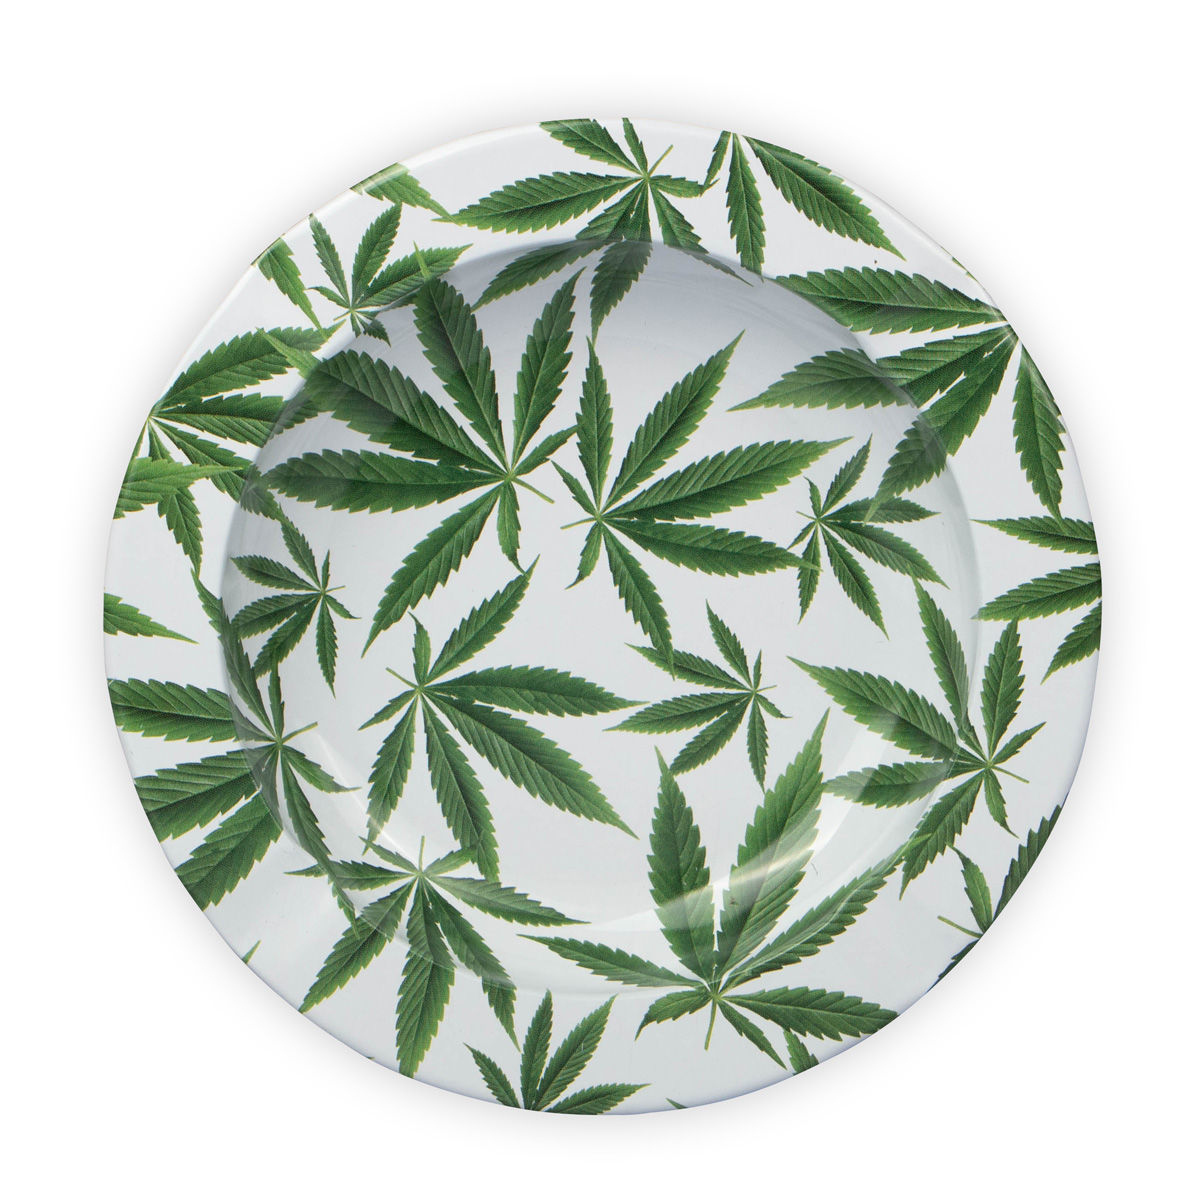 Ashtray cannabis leaf pattrrn